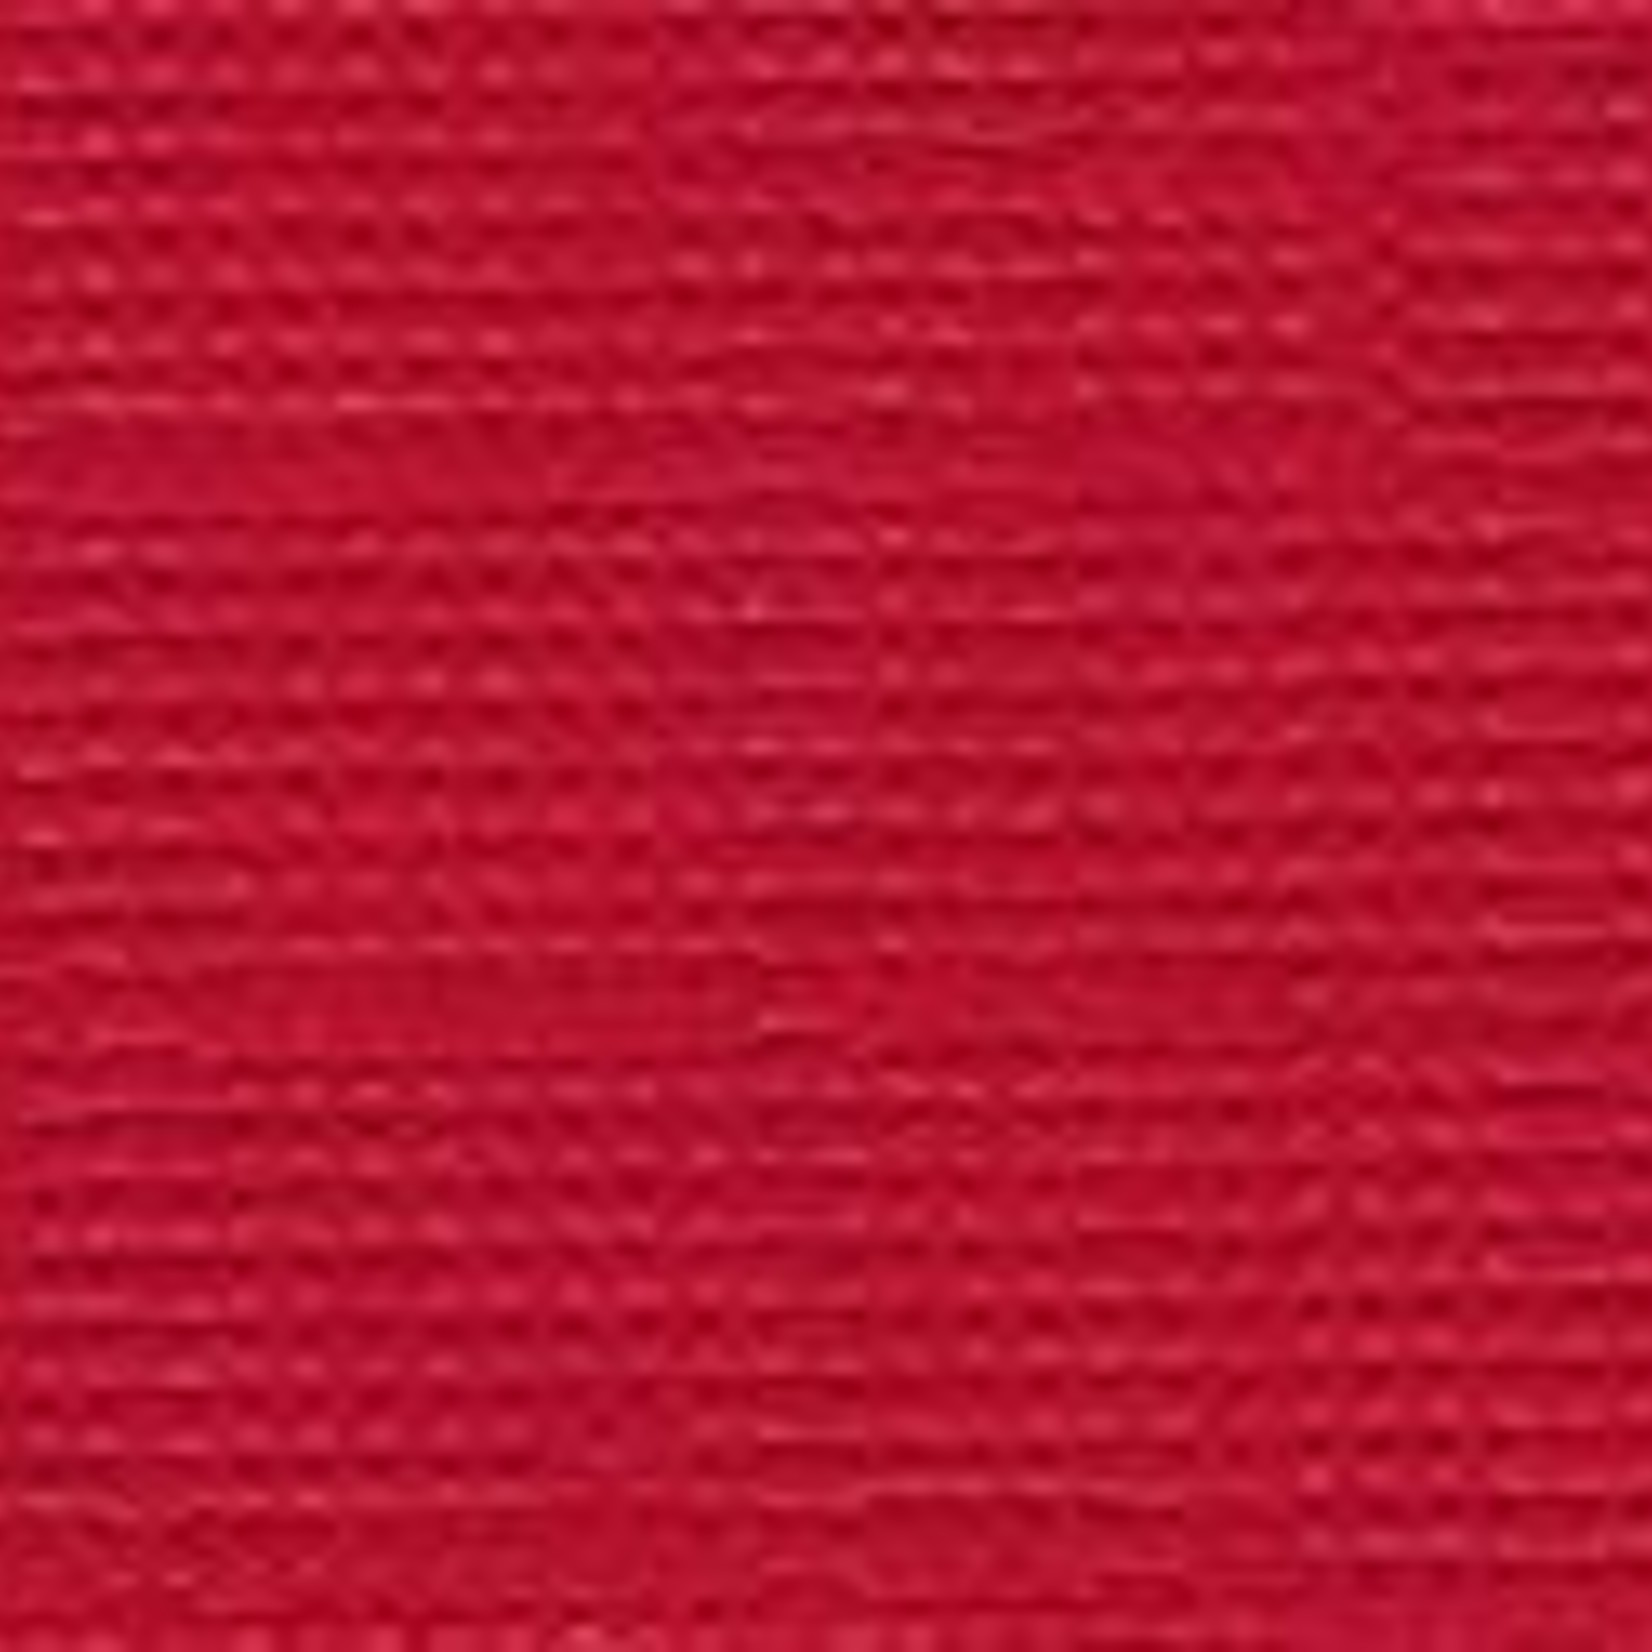 """Bazzill Bazzill 12"""" x 12"""" Canvas Cardstock Classic Red"""